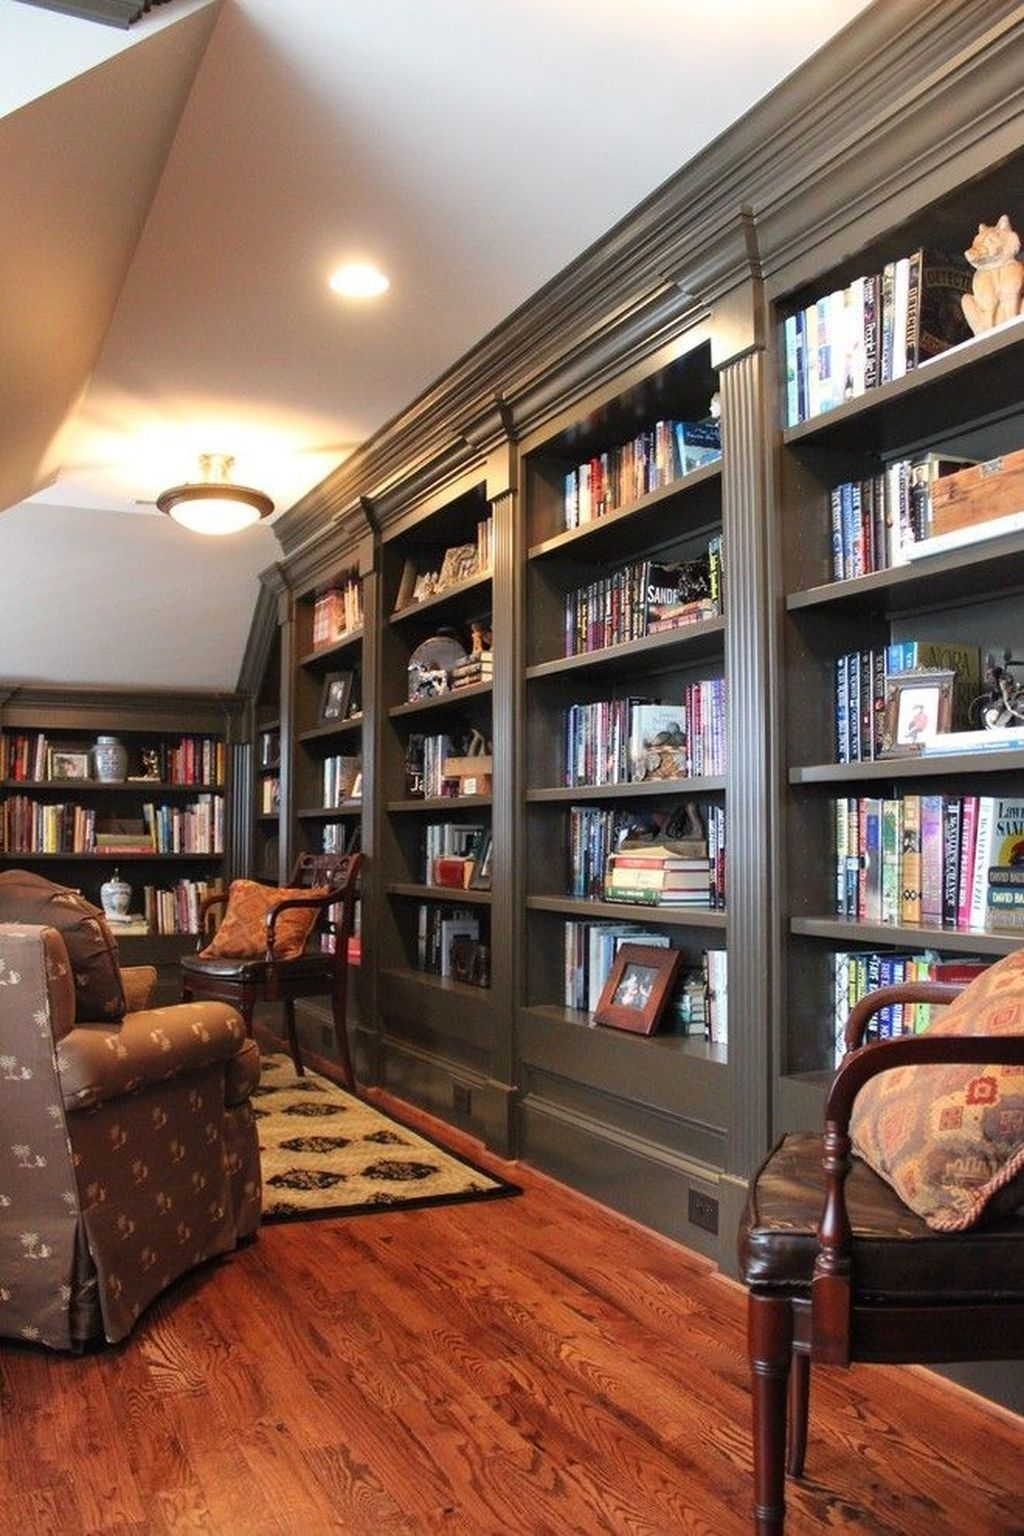 Small Library Room Decorating Ideas: 44 Splendid Home Library Design Ideas For Your Inspiration